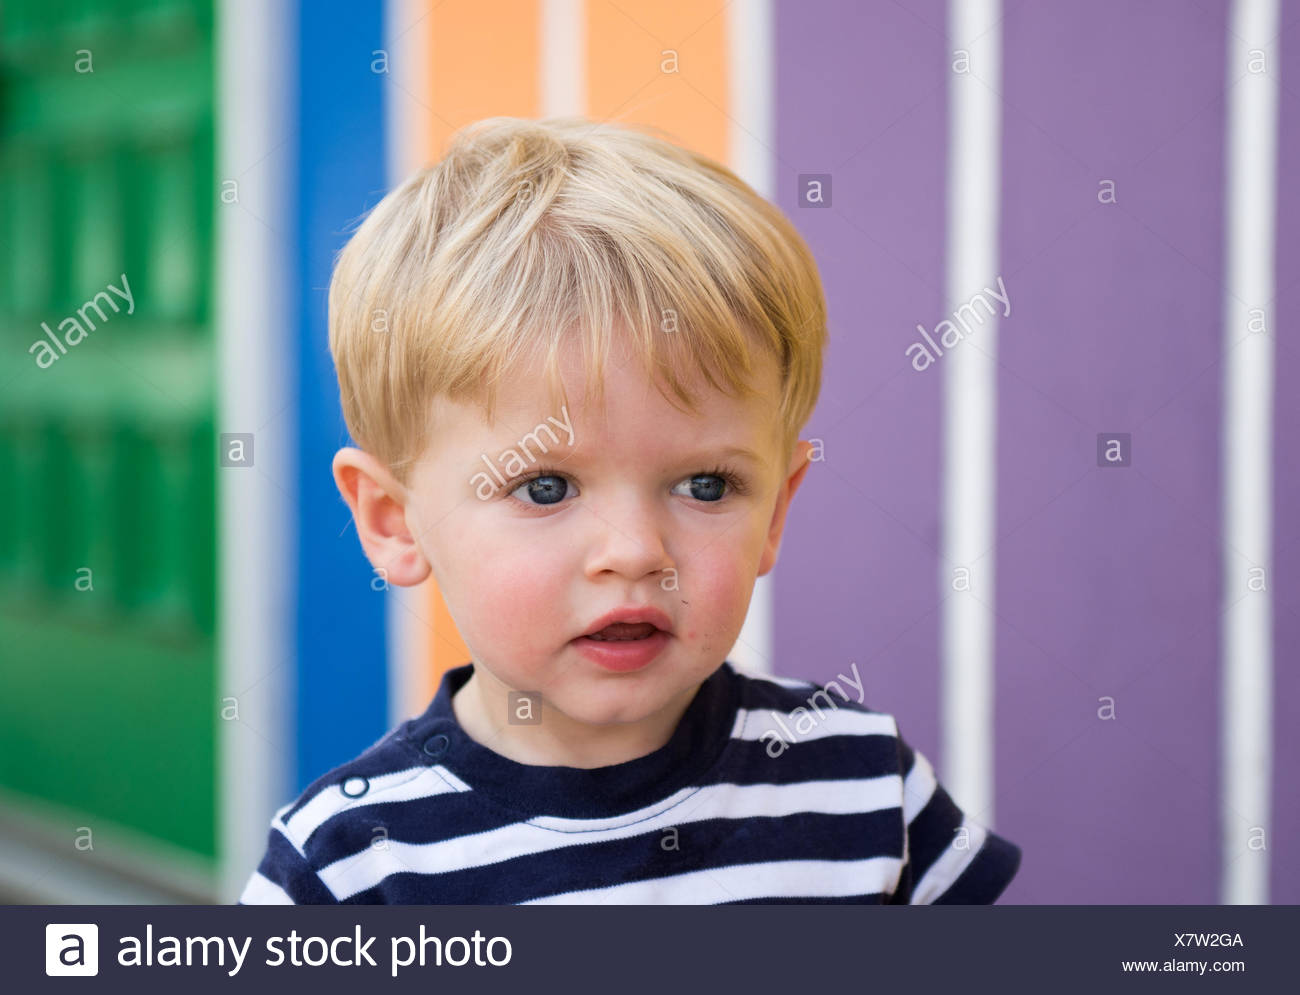 USA, Indiana, Saint Joseph County, Mishawaka, Toddler boy playing by rainbow wall - Stock Image